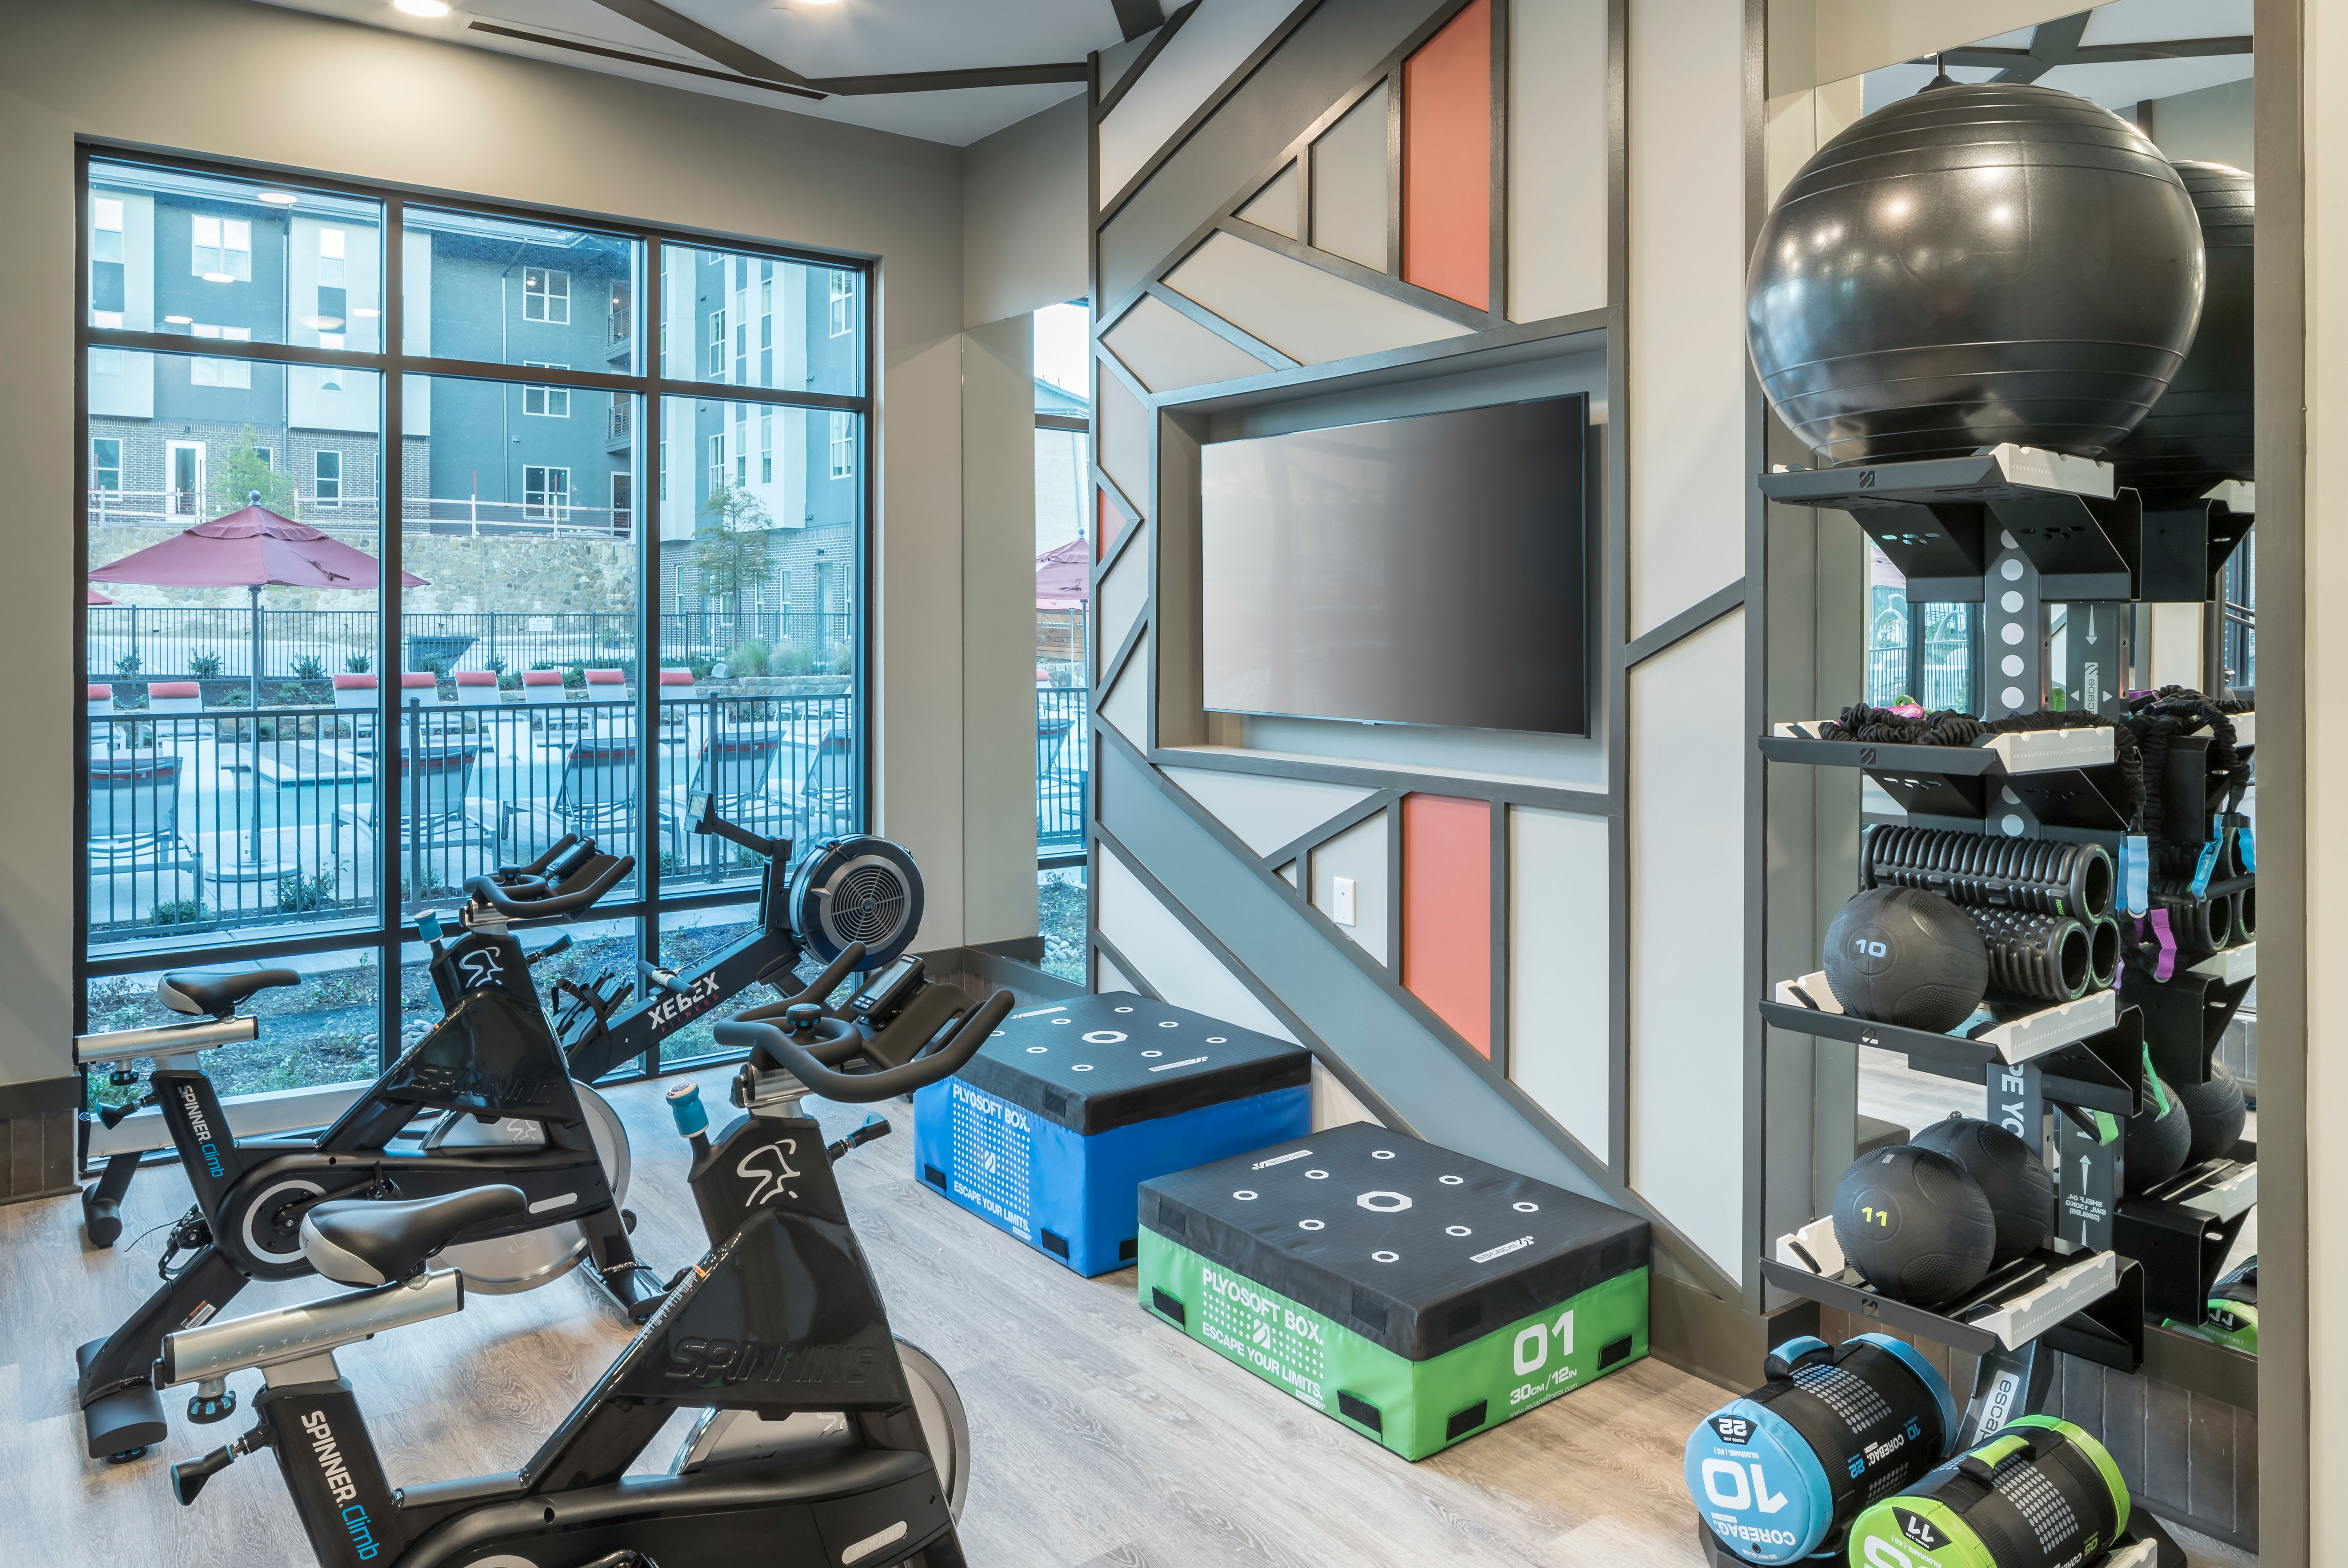 Full state of the art fitness area for residents at The ReVe in Garland, Texas